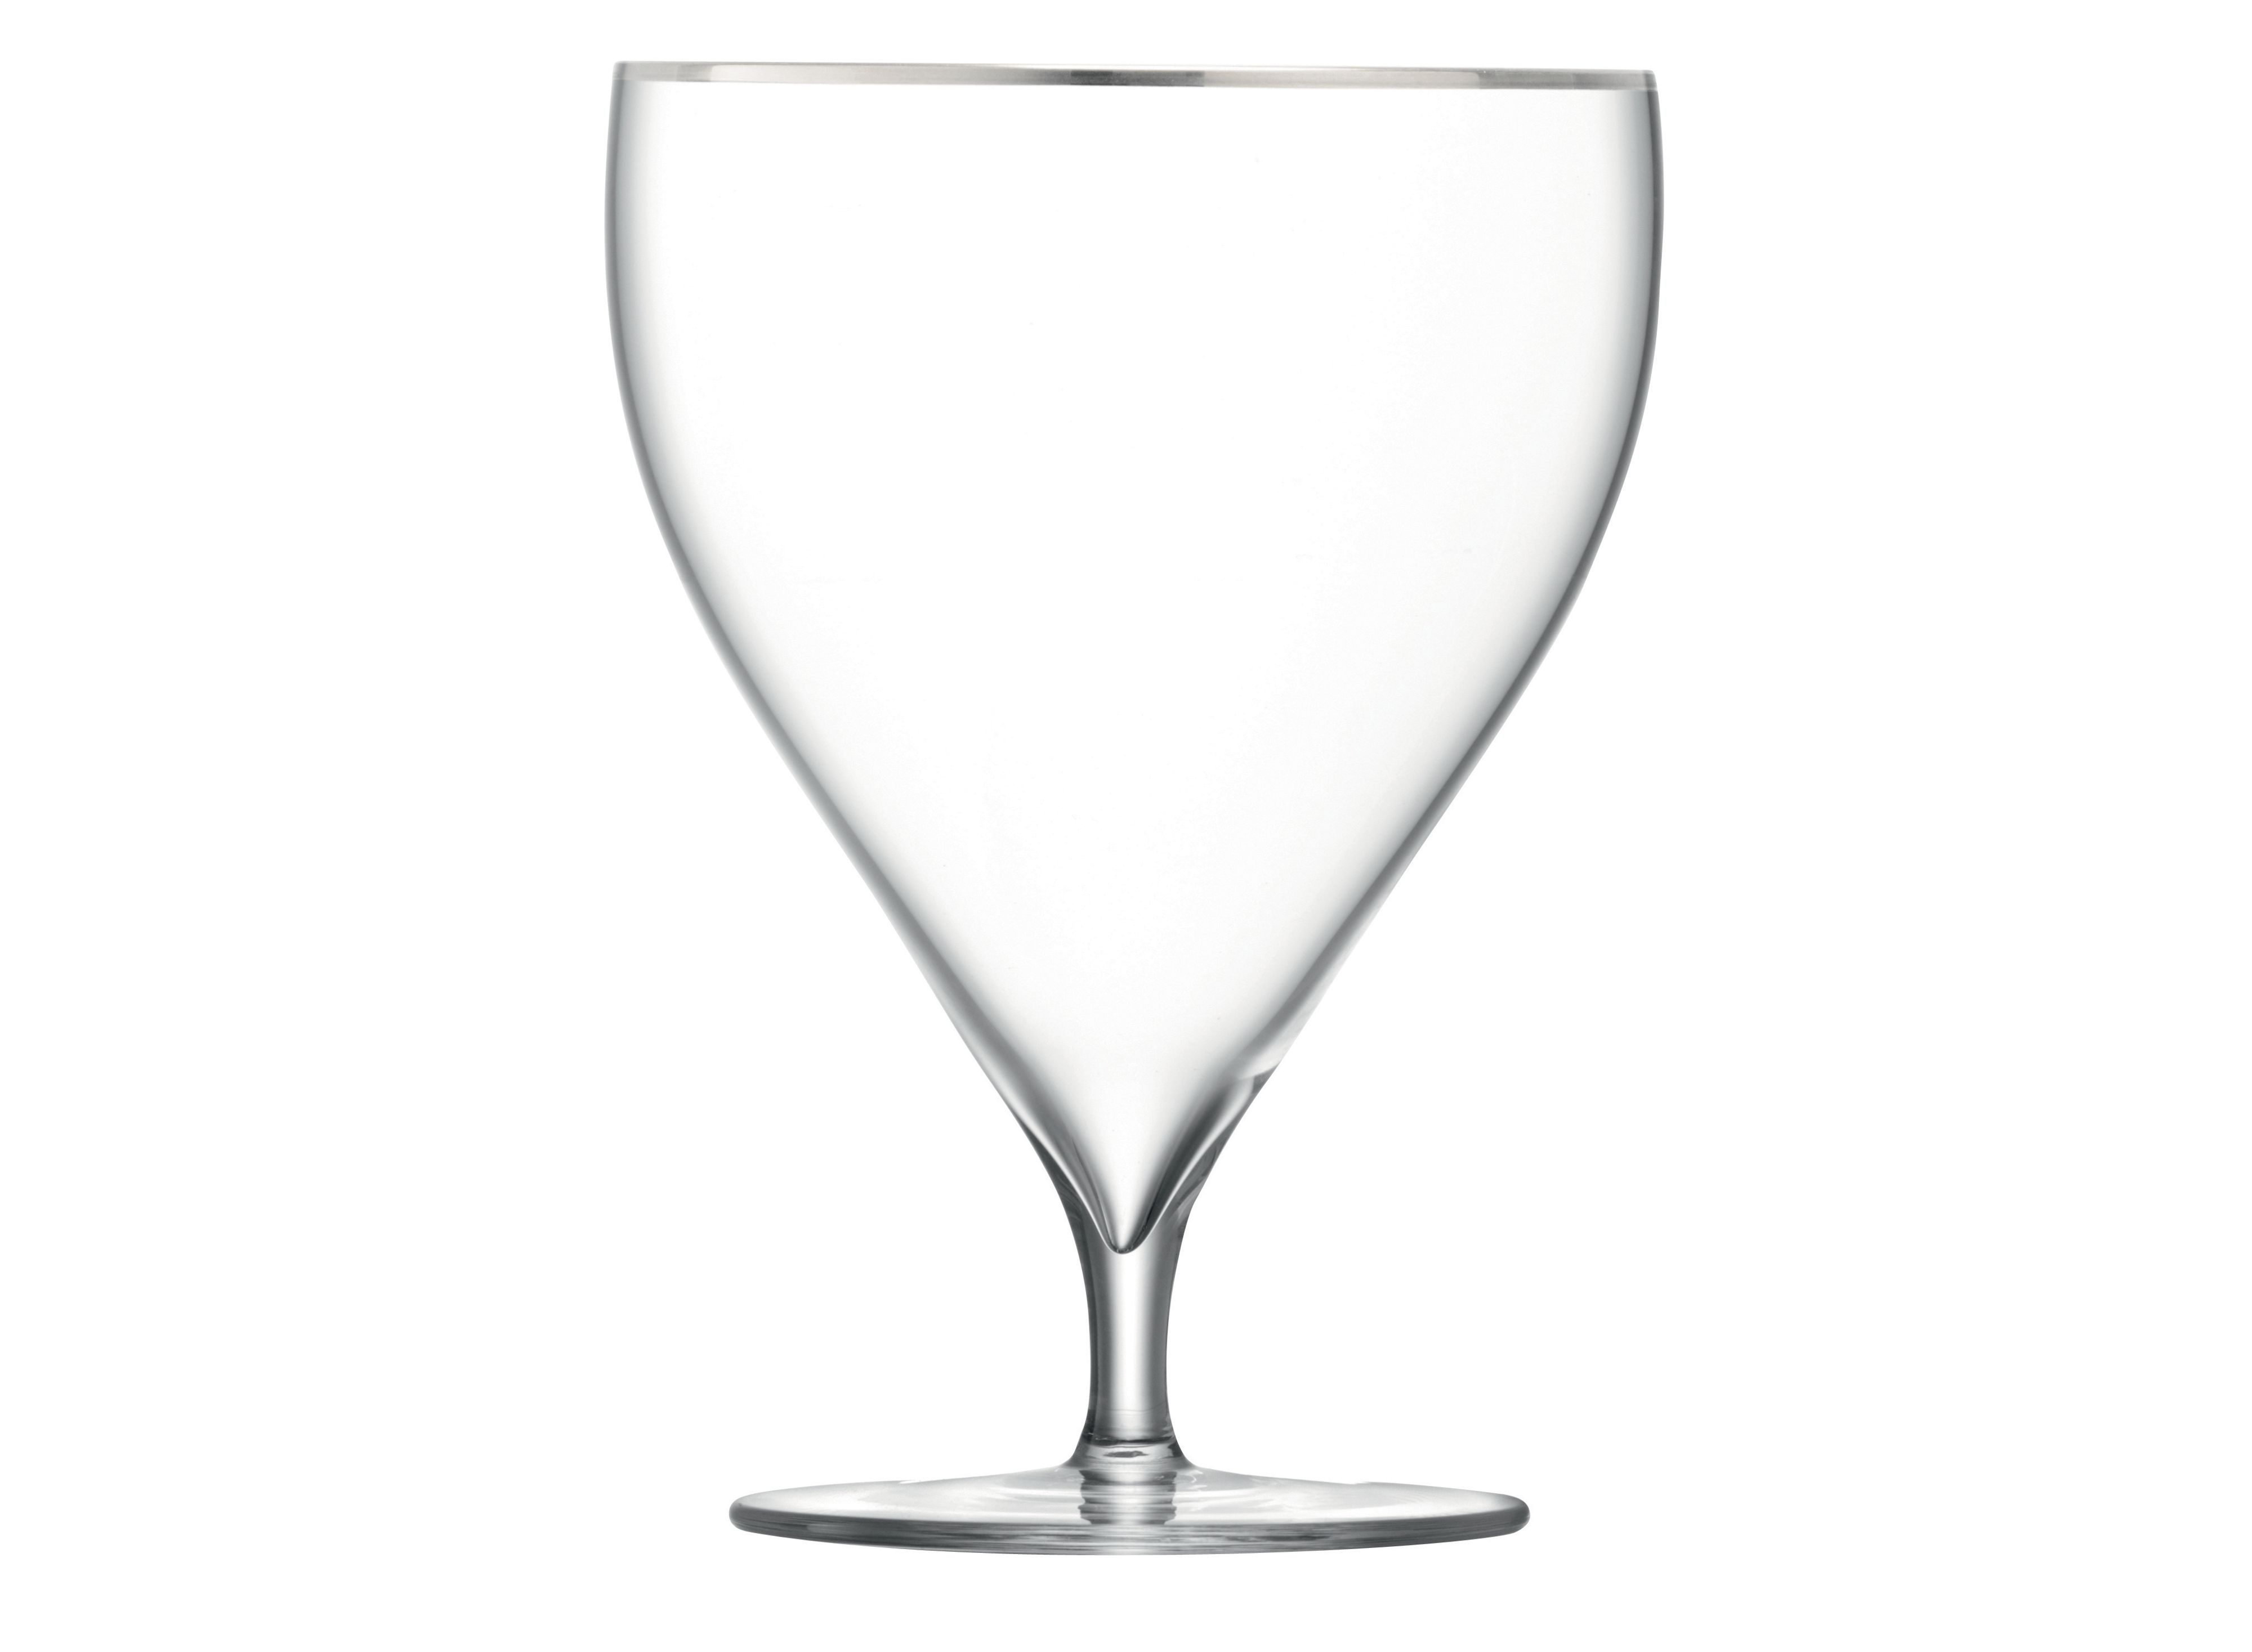 Savoy Platinum rim water glass set of 2